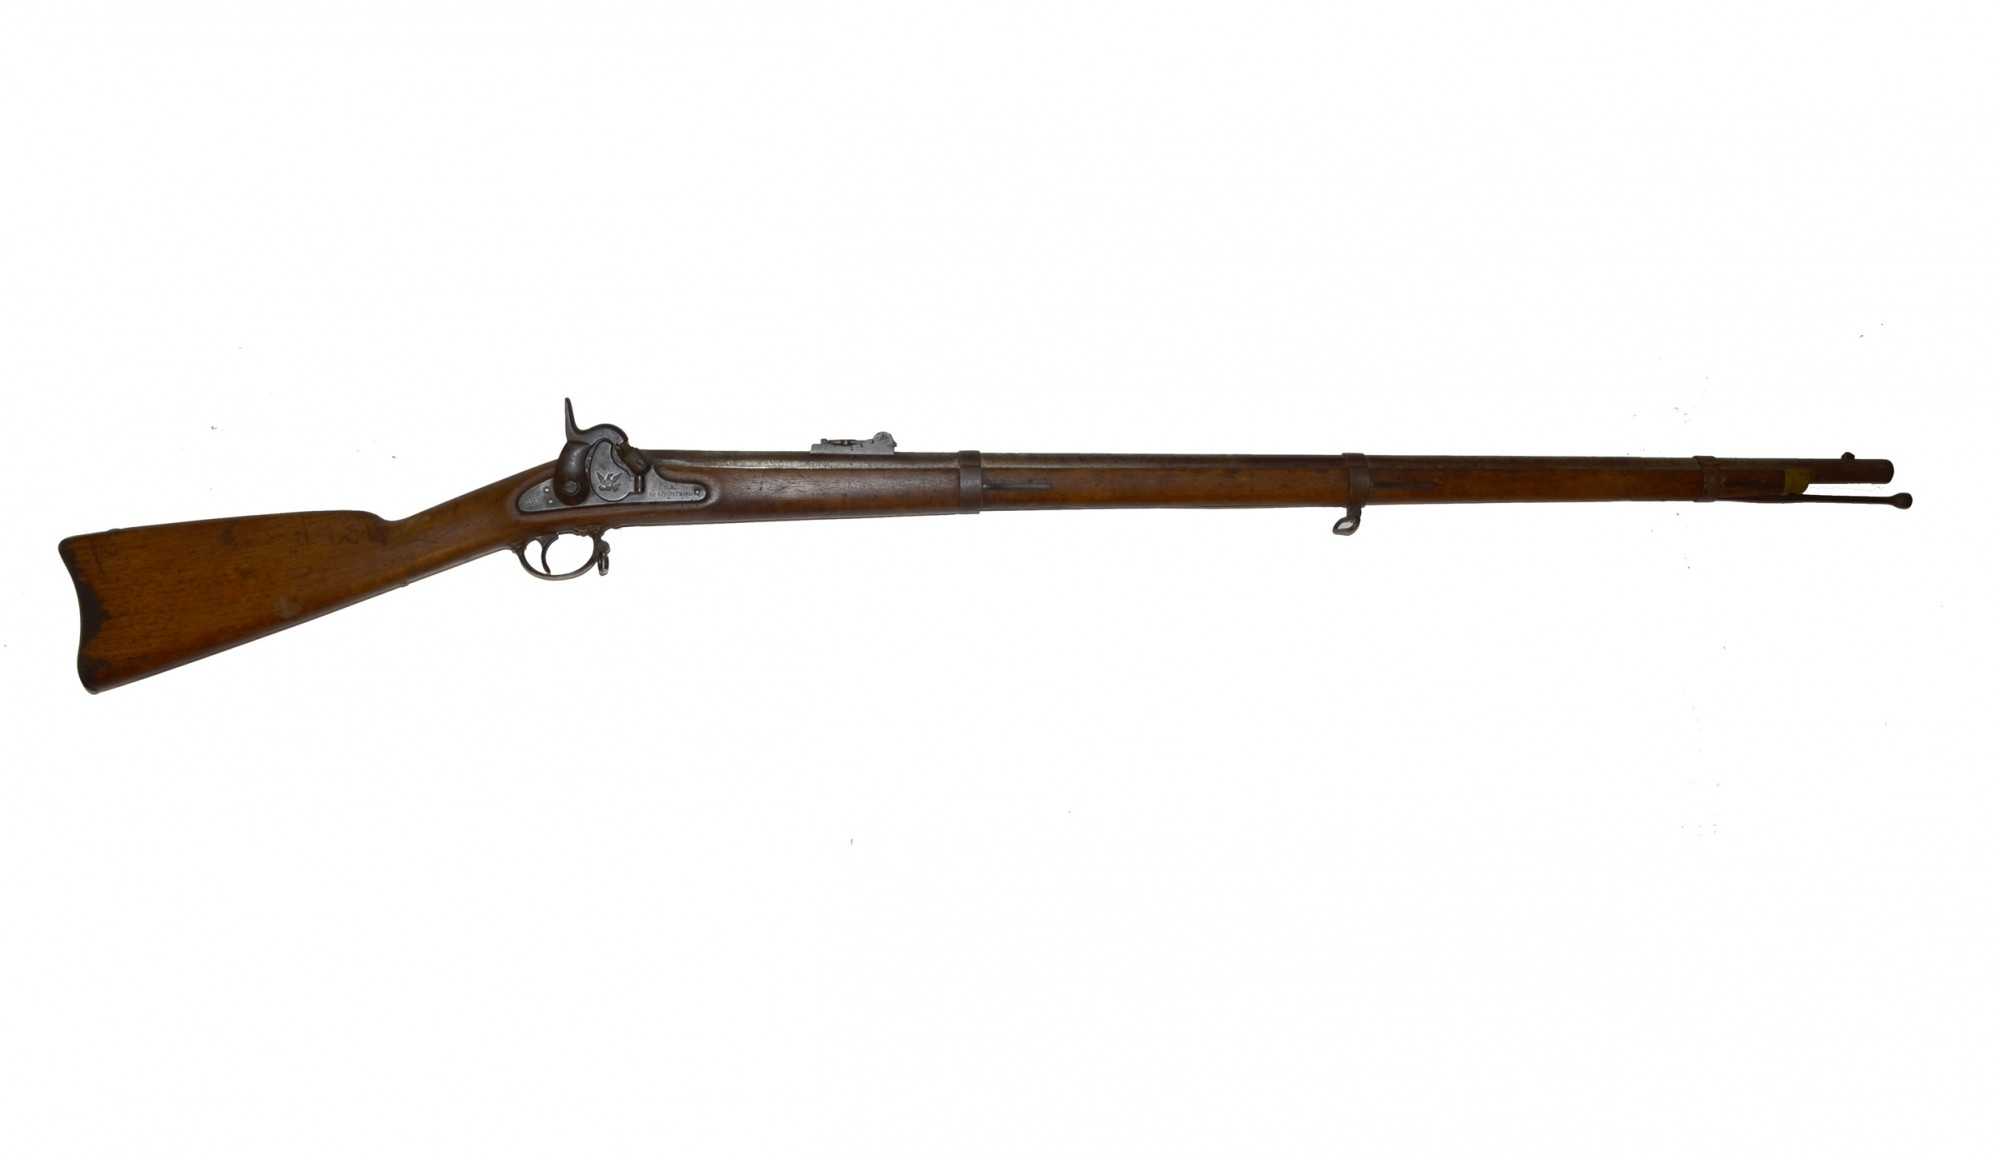 SPRINGFIELD M1855 PERCUSSION RIFLE-MUSKET, DATED 1858